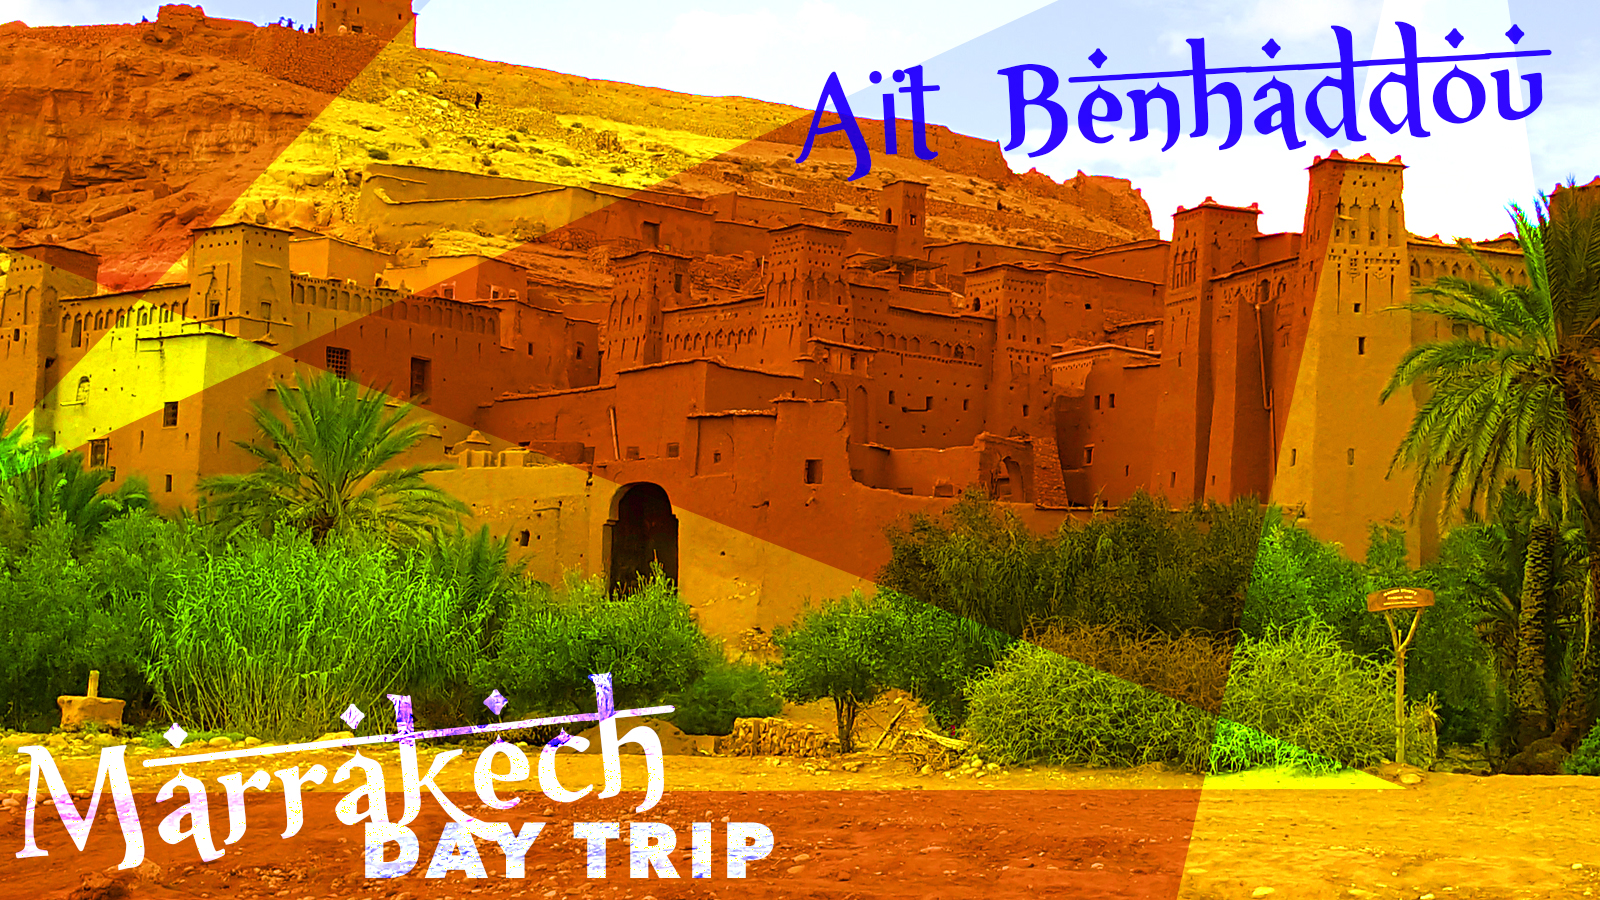 Aït Benhaddou Day Trip From Marrakech